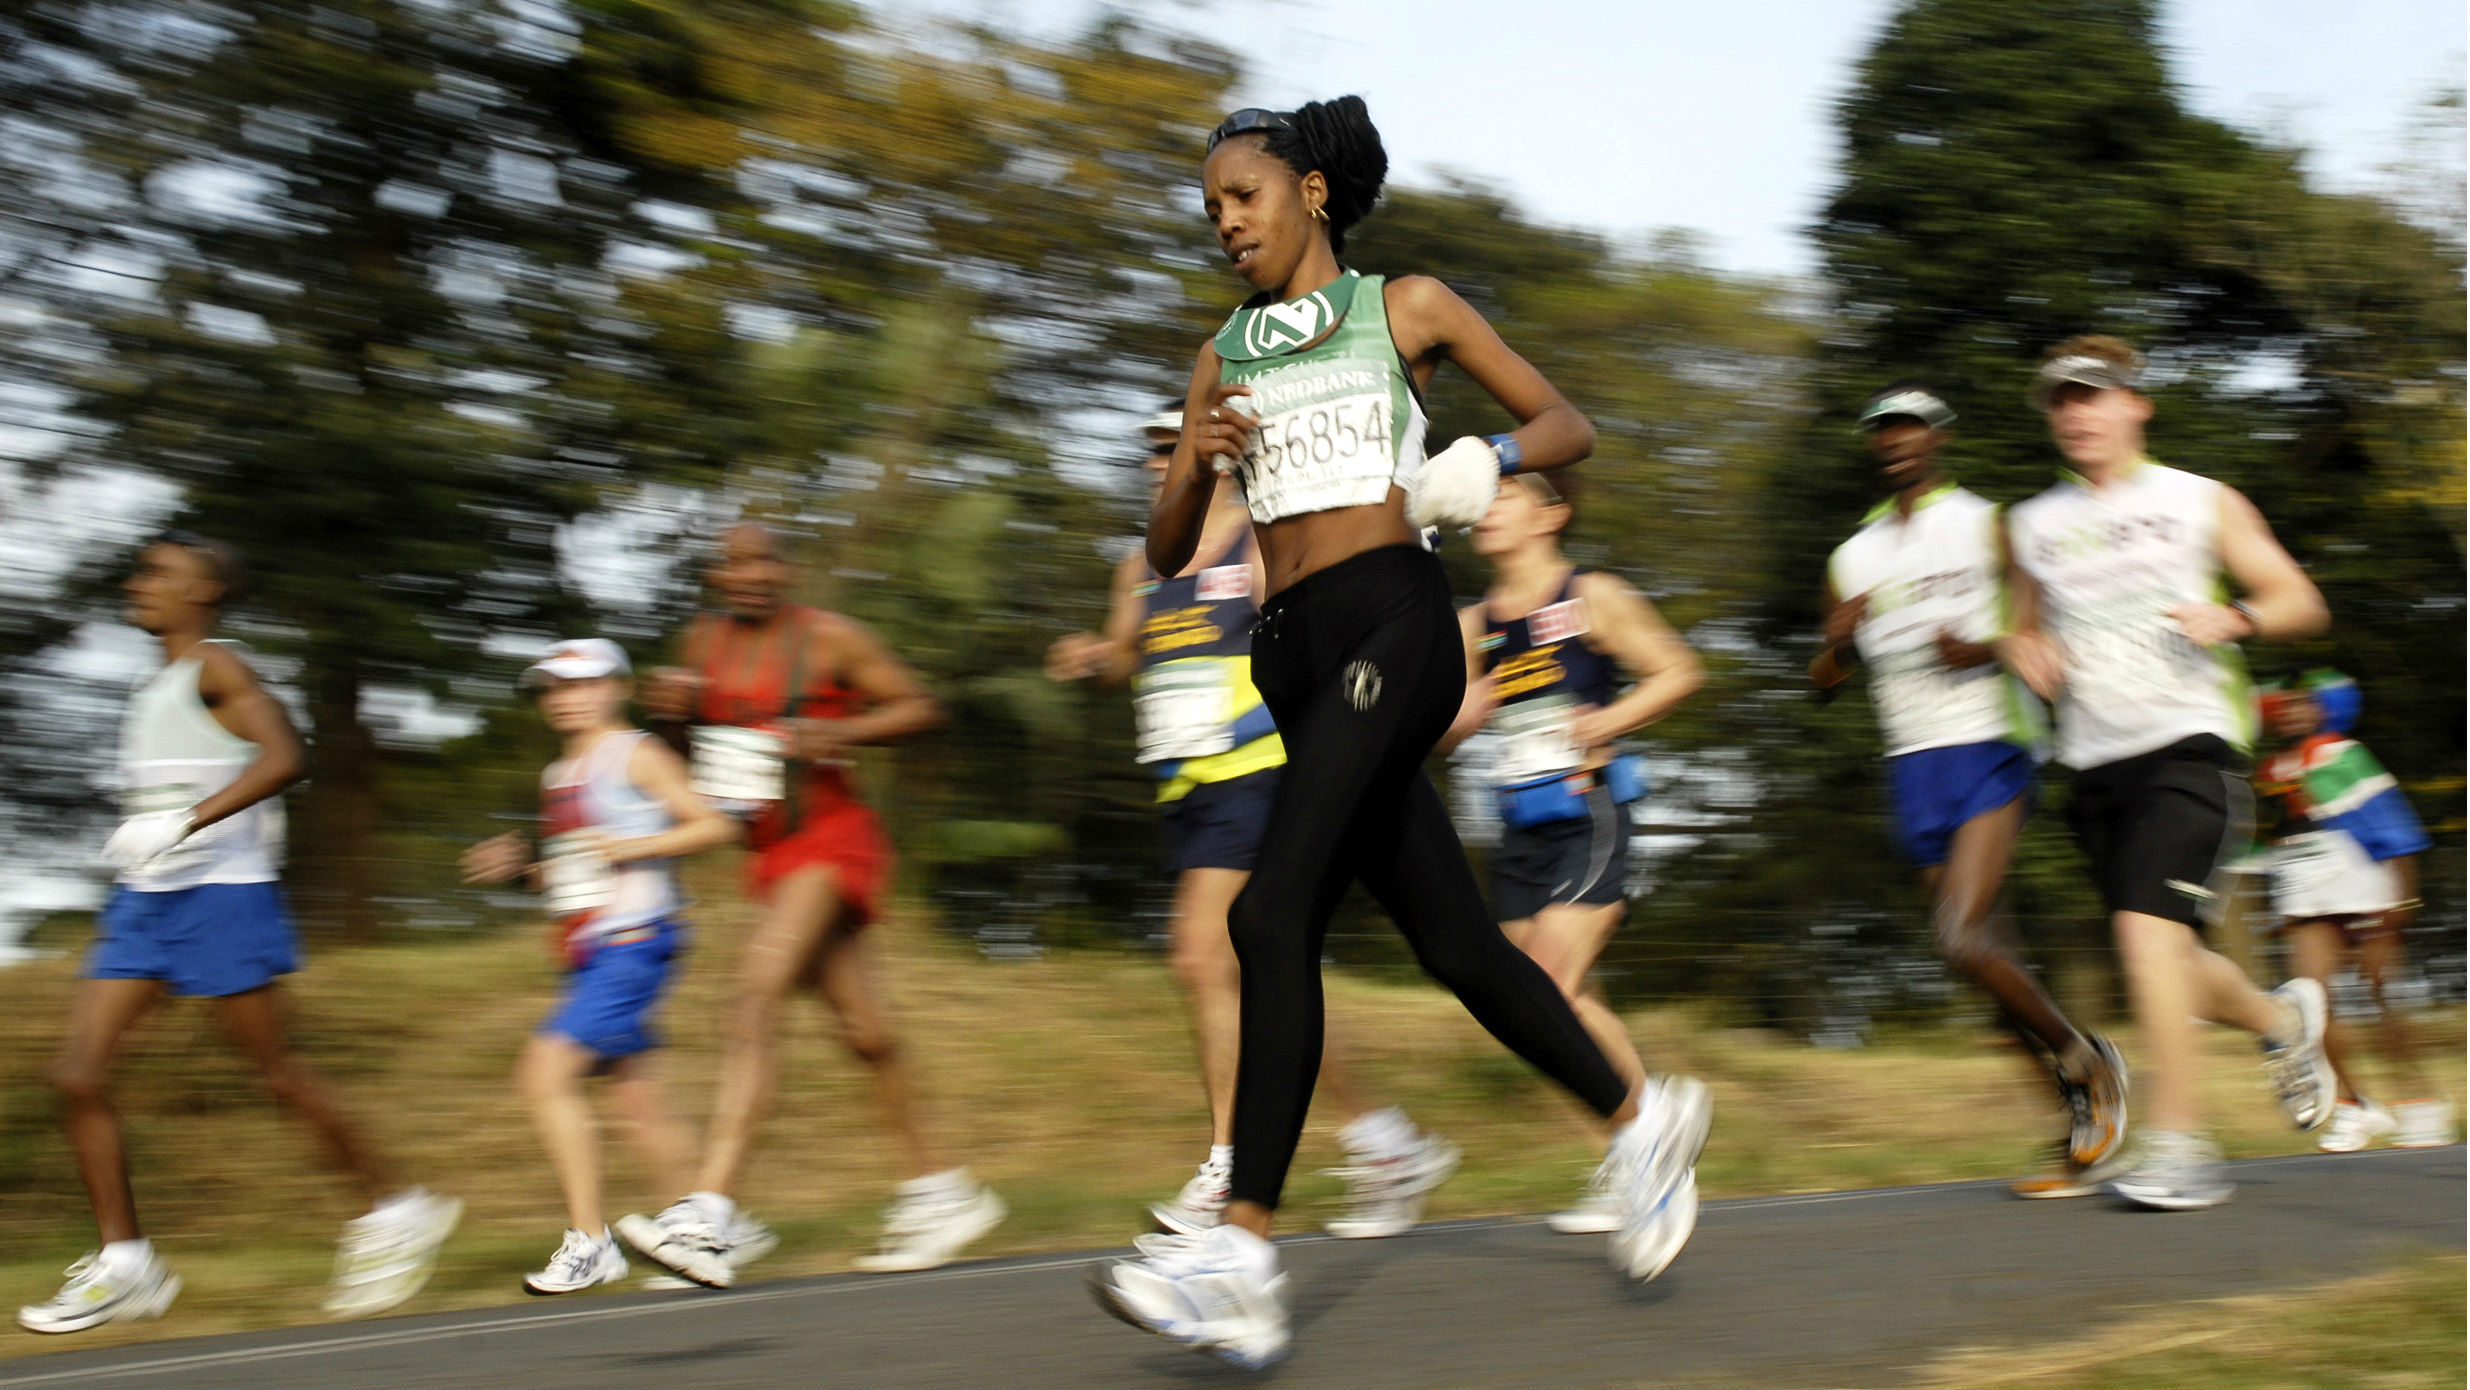 Runners in an ultra marathon; one woman is in focus, the rest blurred behind her.